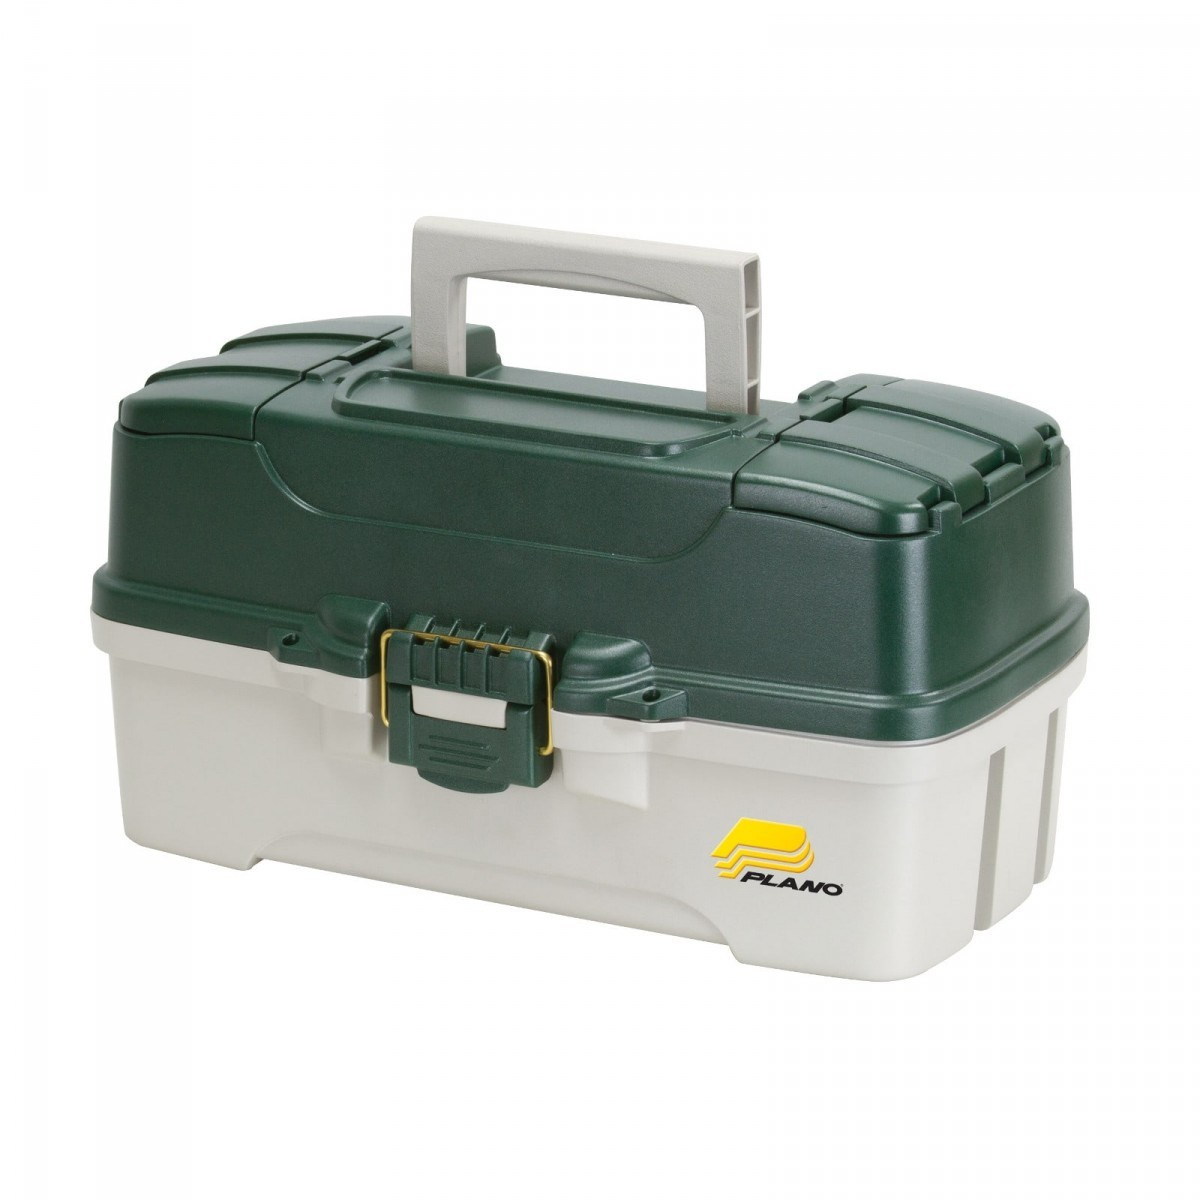 Fishing accessories tackle boxes broncos outdoors for Plano fishing box